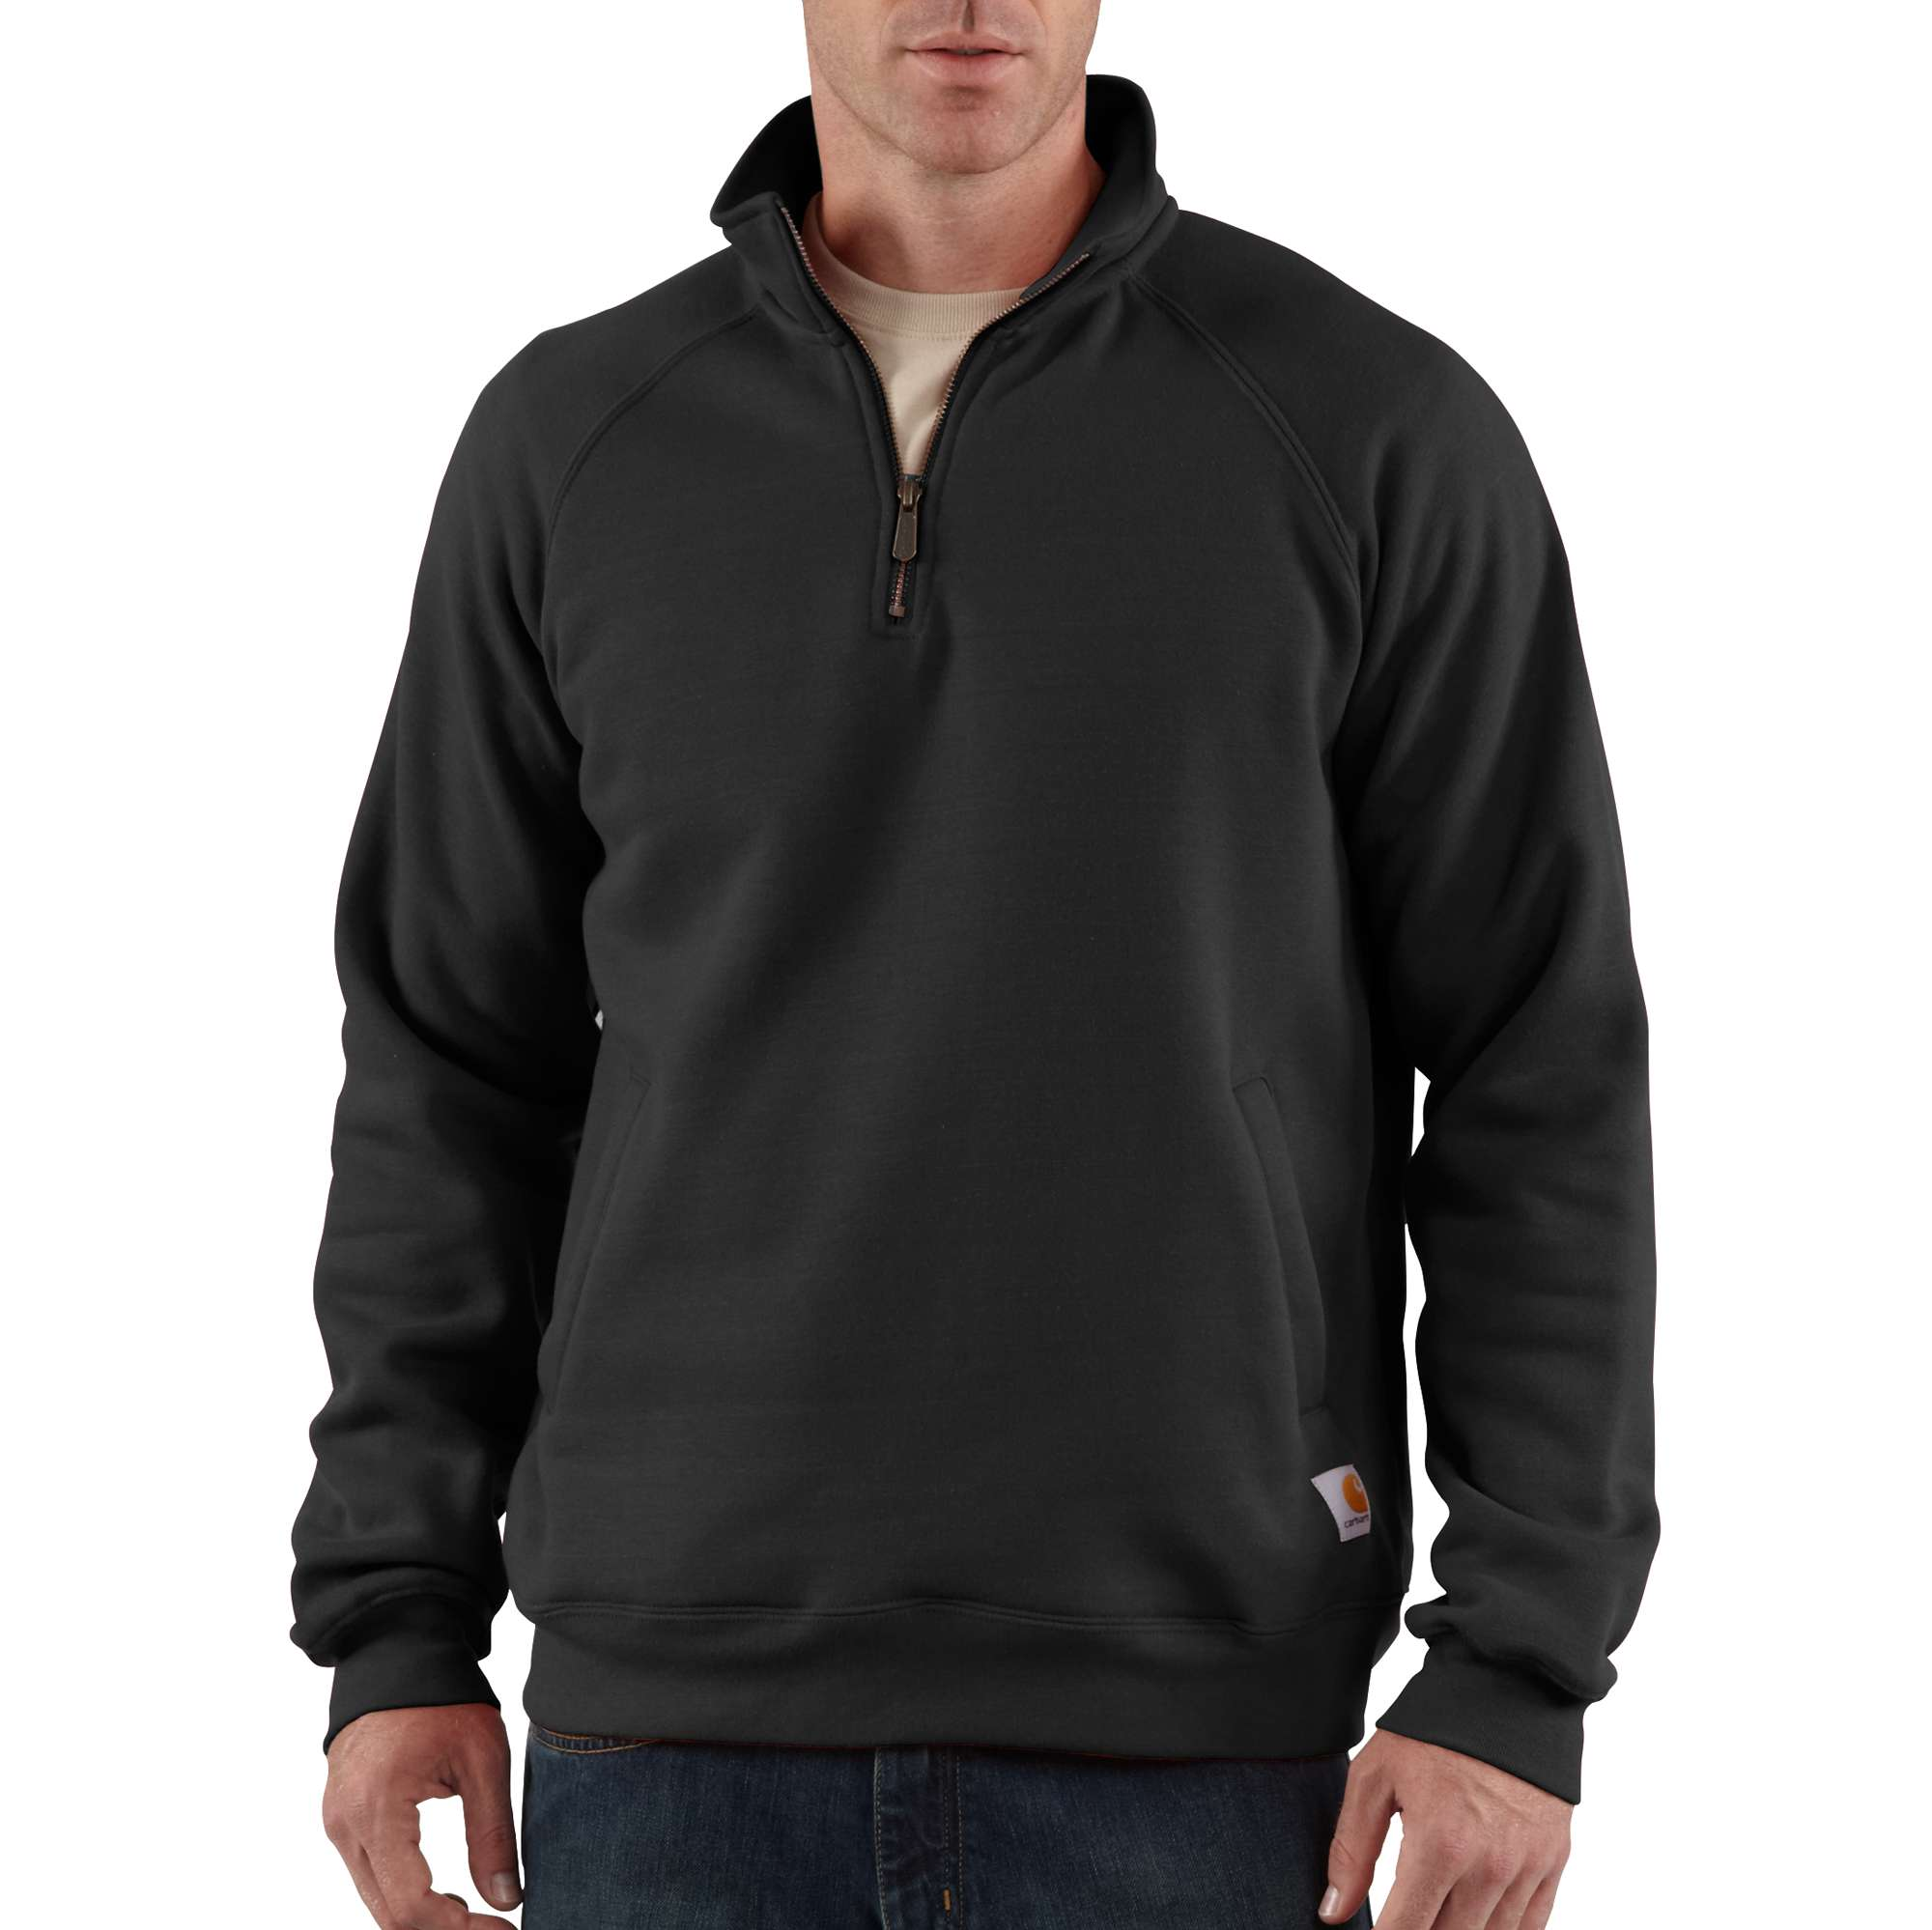 Carhartt Midweight Quarter-zip Mock-neck Sweatshirt